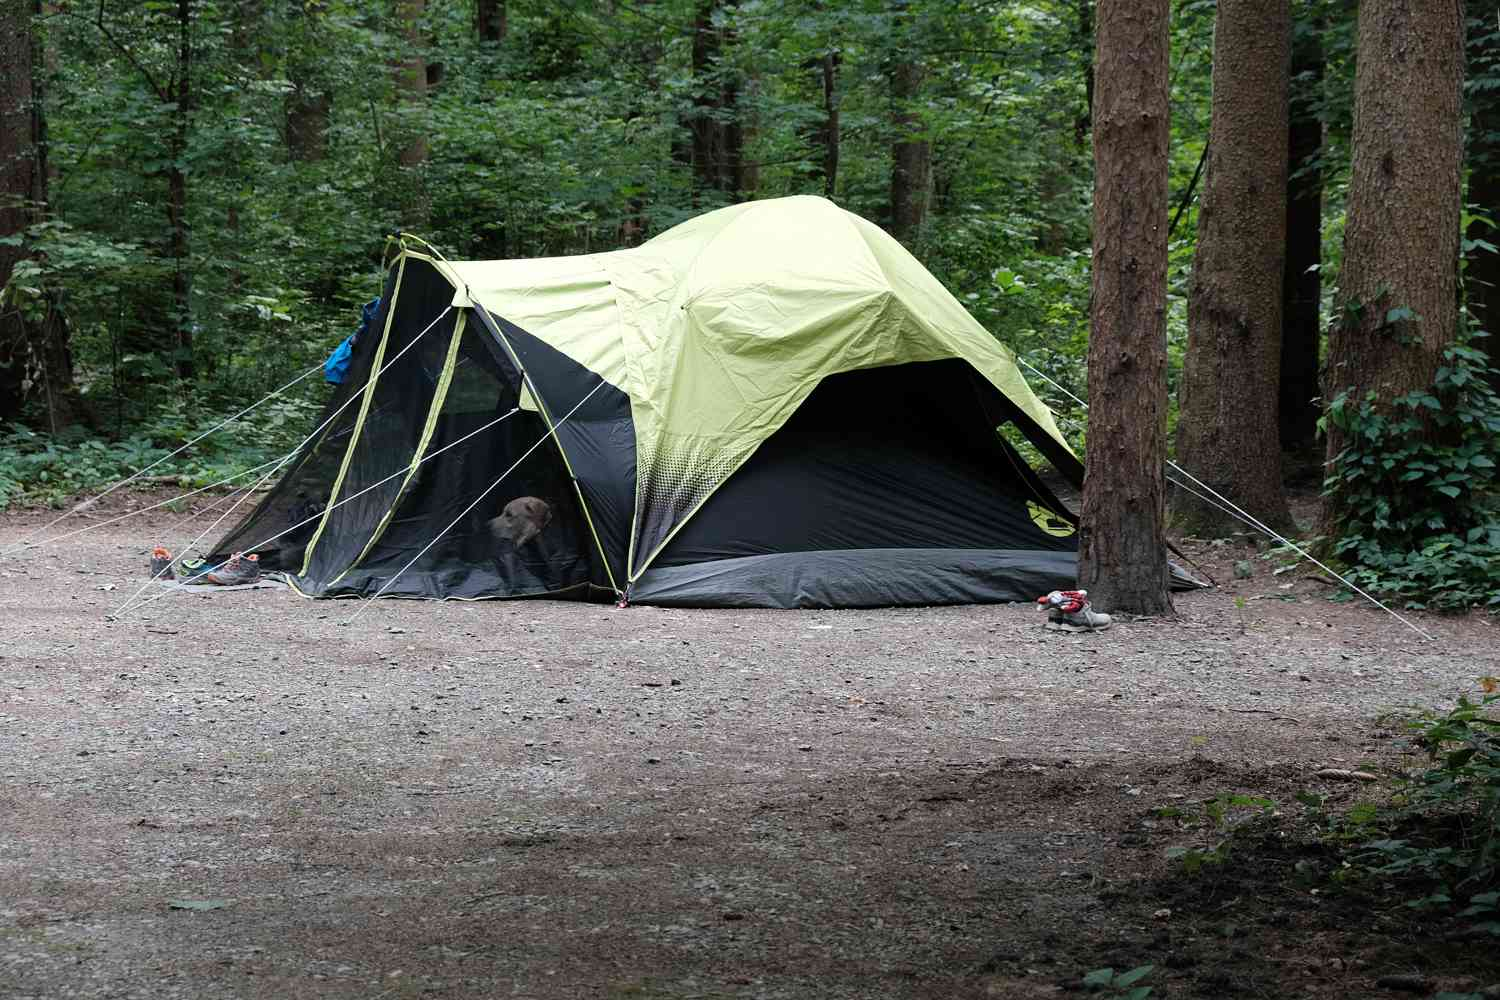 green and black tent in woods with dog peeking out from screen